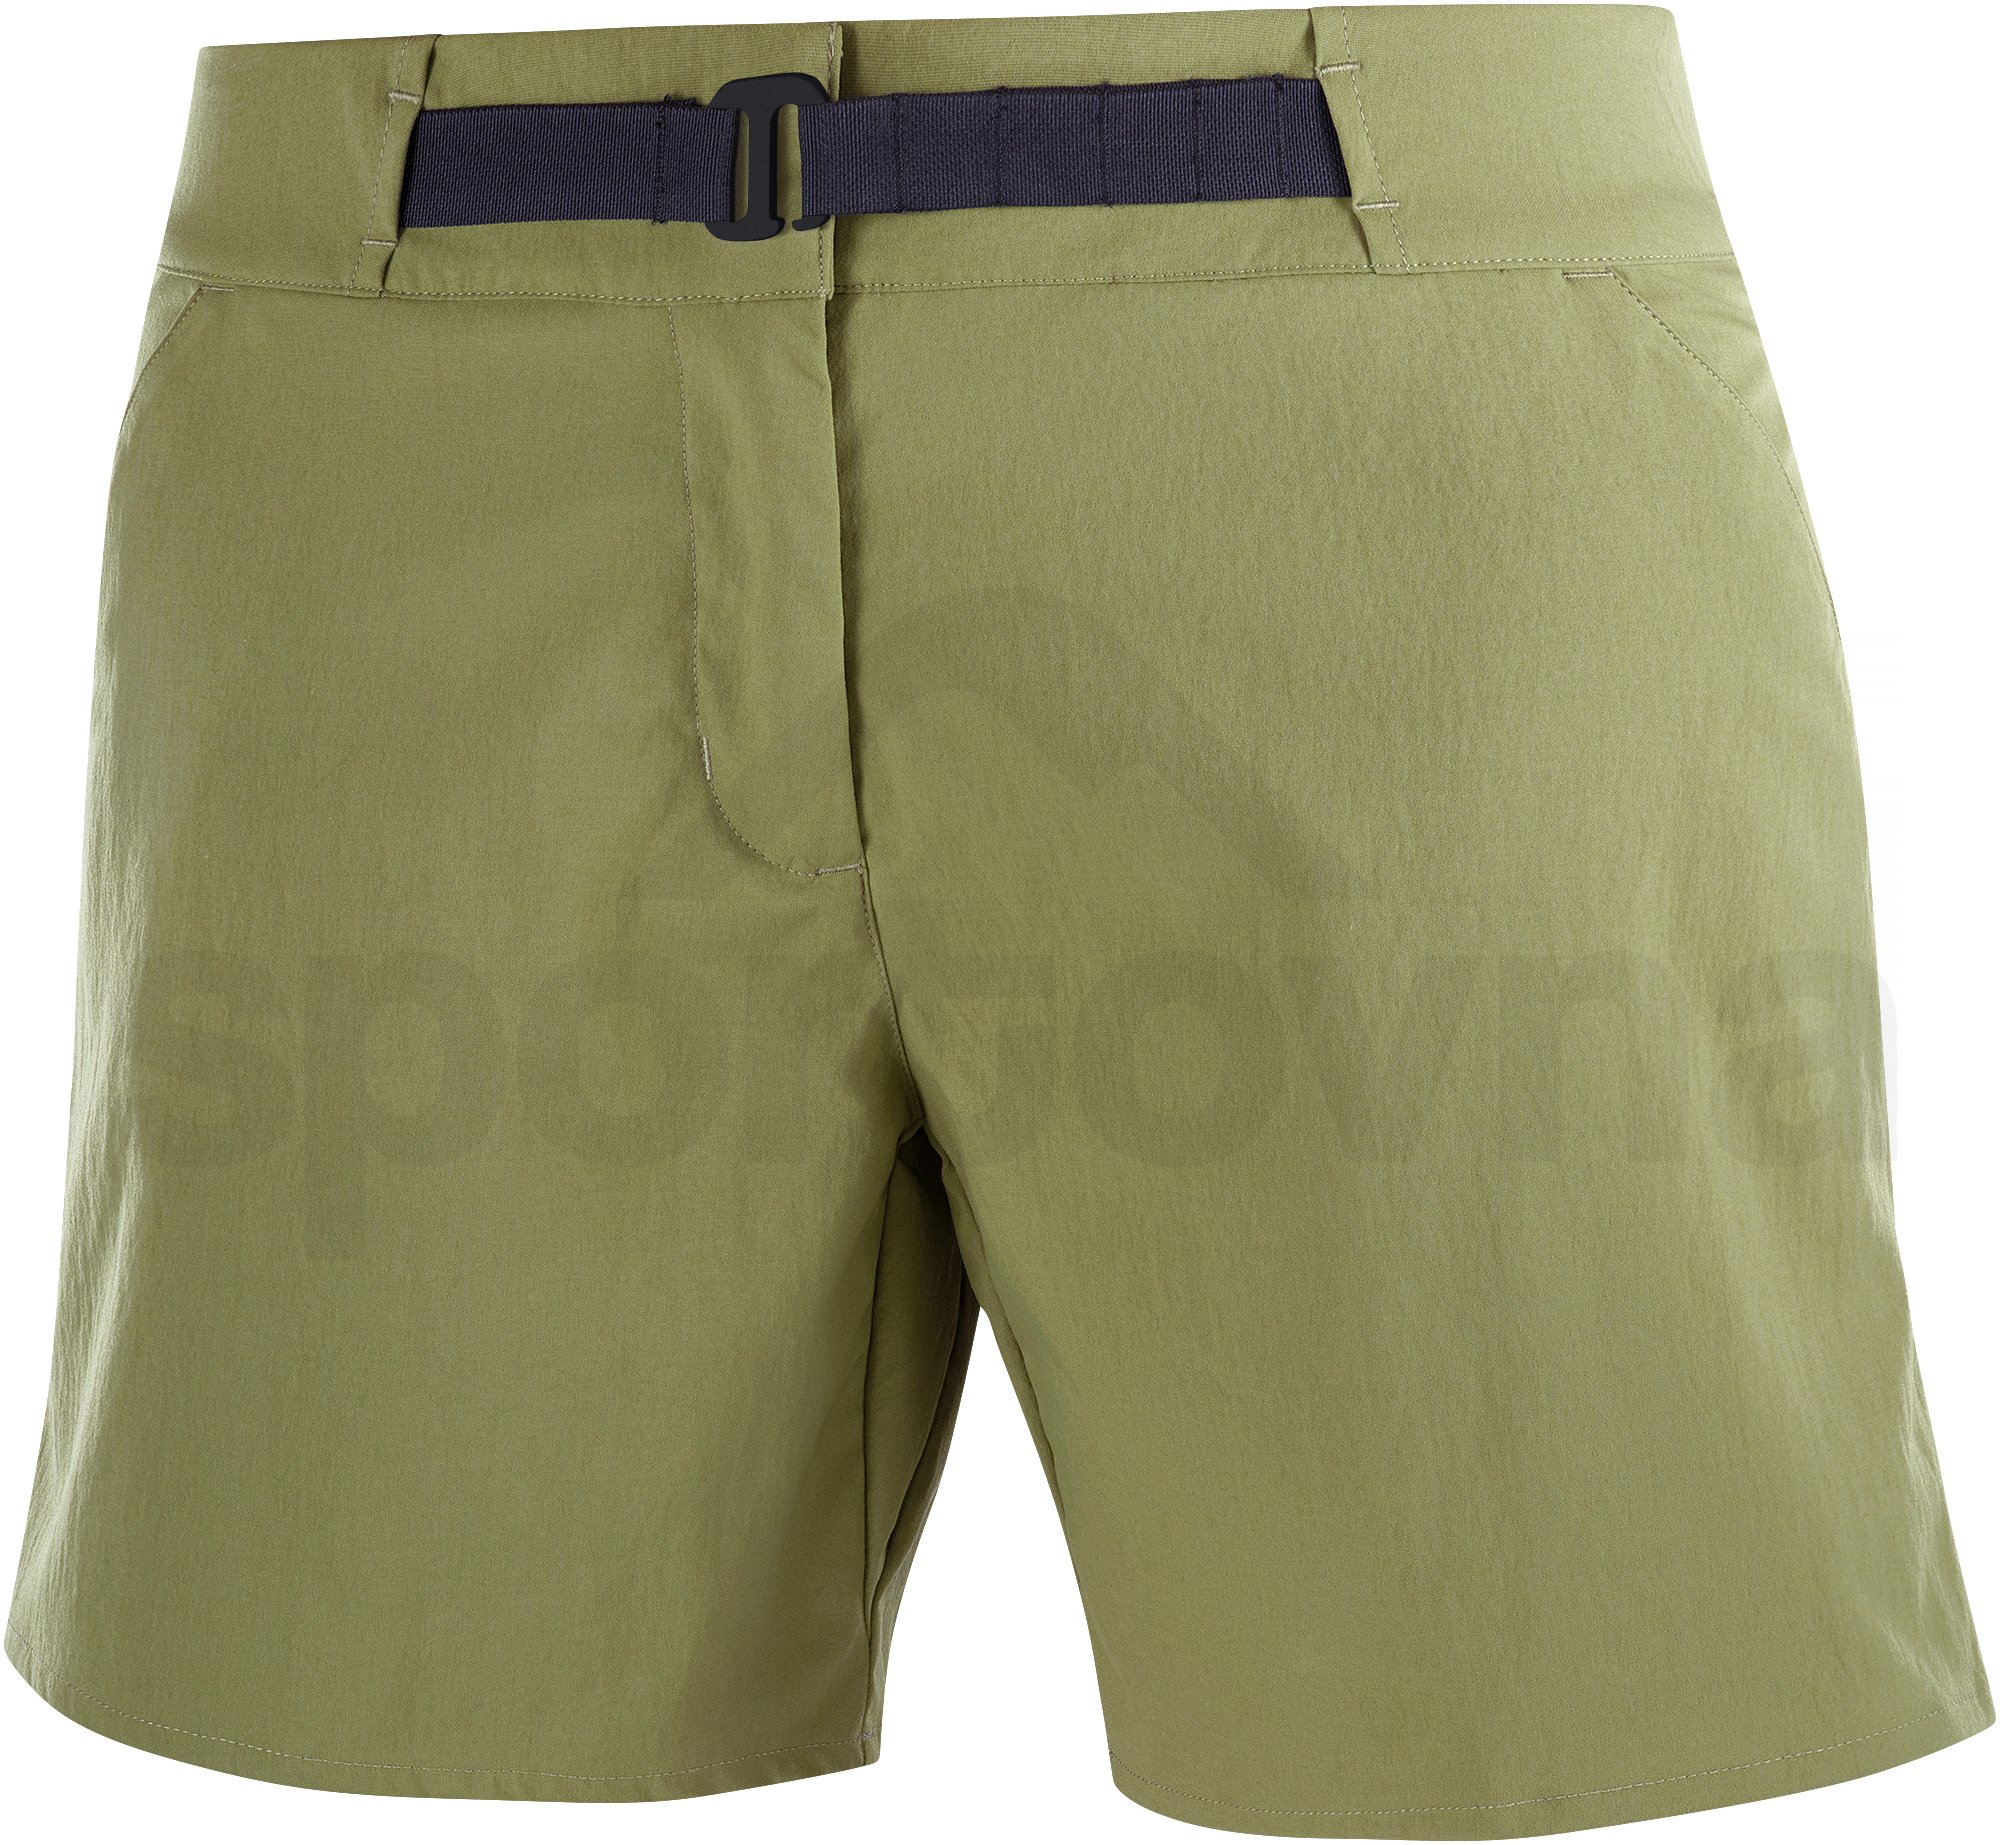 LC1505700_0_GHO_outrackshort_martiniolive_outdoor_w